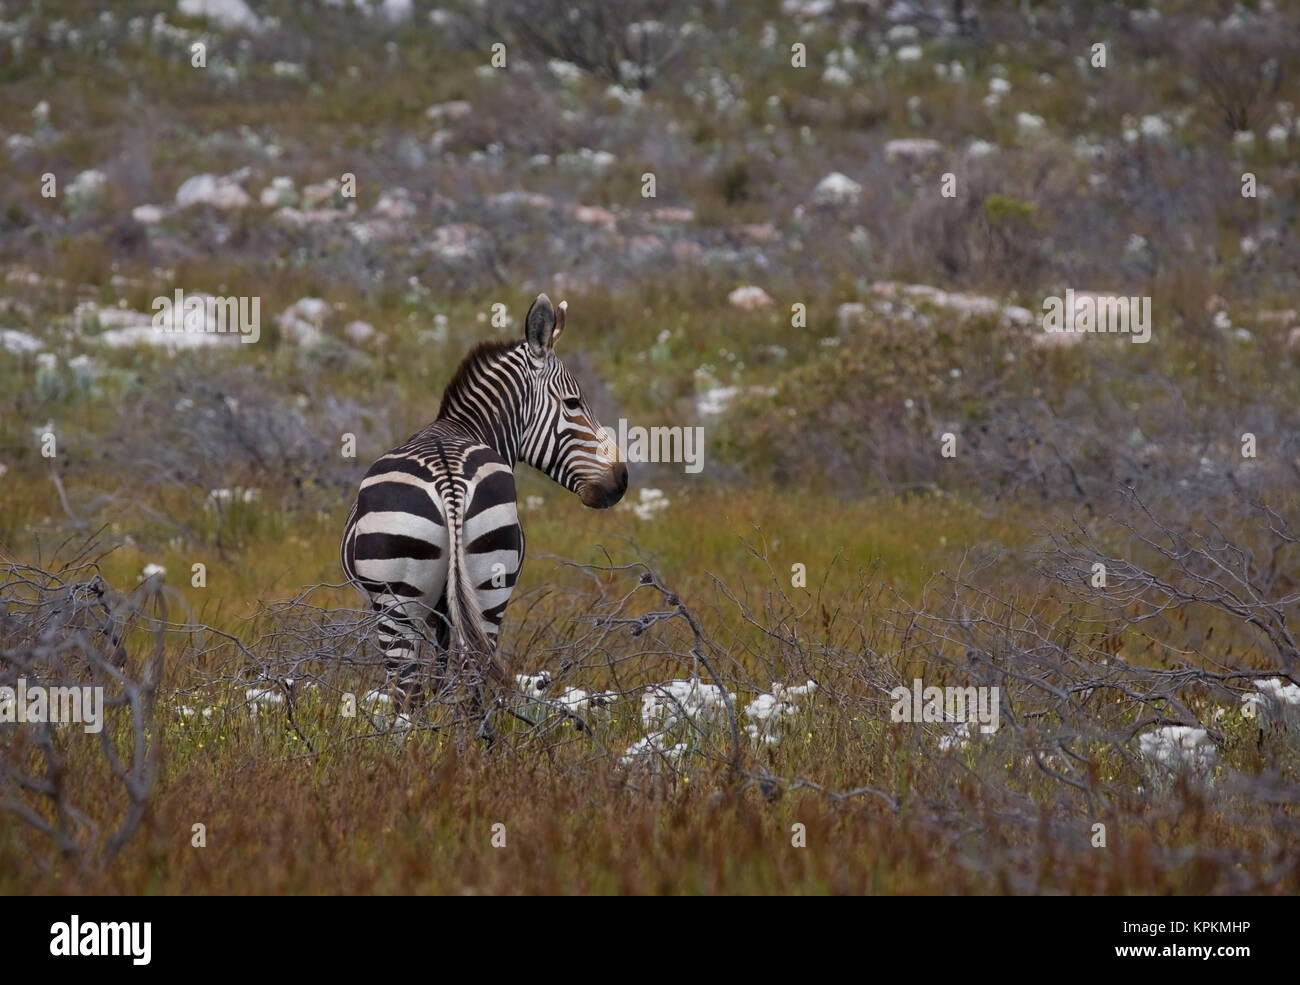 Mountain zebra (Equus zebra) in Cape Point National Park, Cape Town, South Africa. - Stock Image